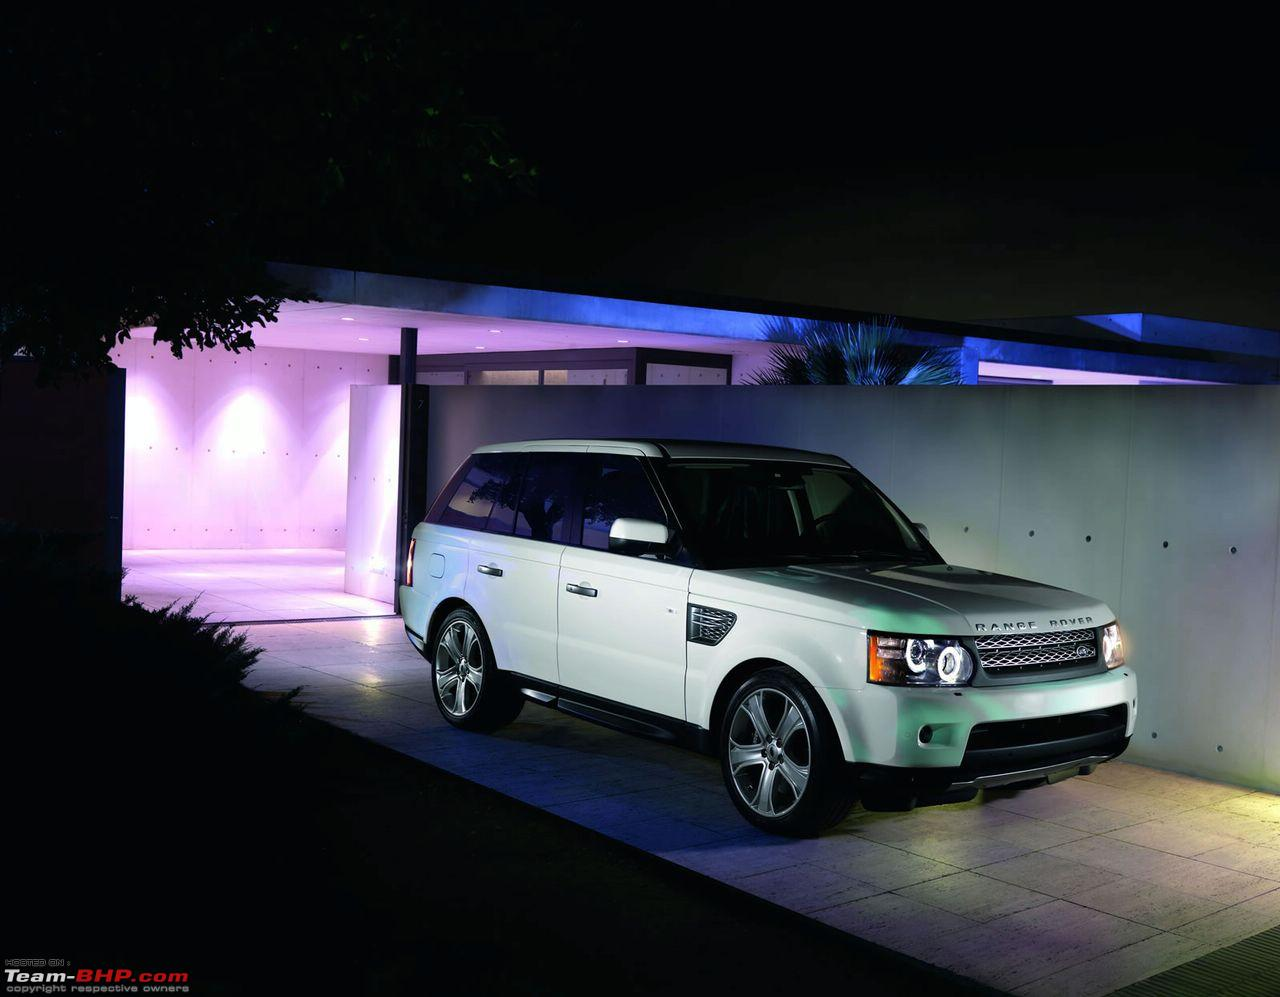 land rover unveil 2010 range rover sport with all new 510hp v8 engine team bhp. Black Bedroom Furniture Sets. Home Design Ideas